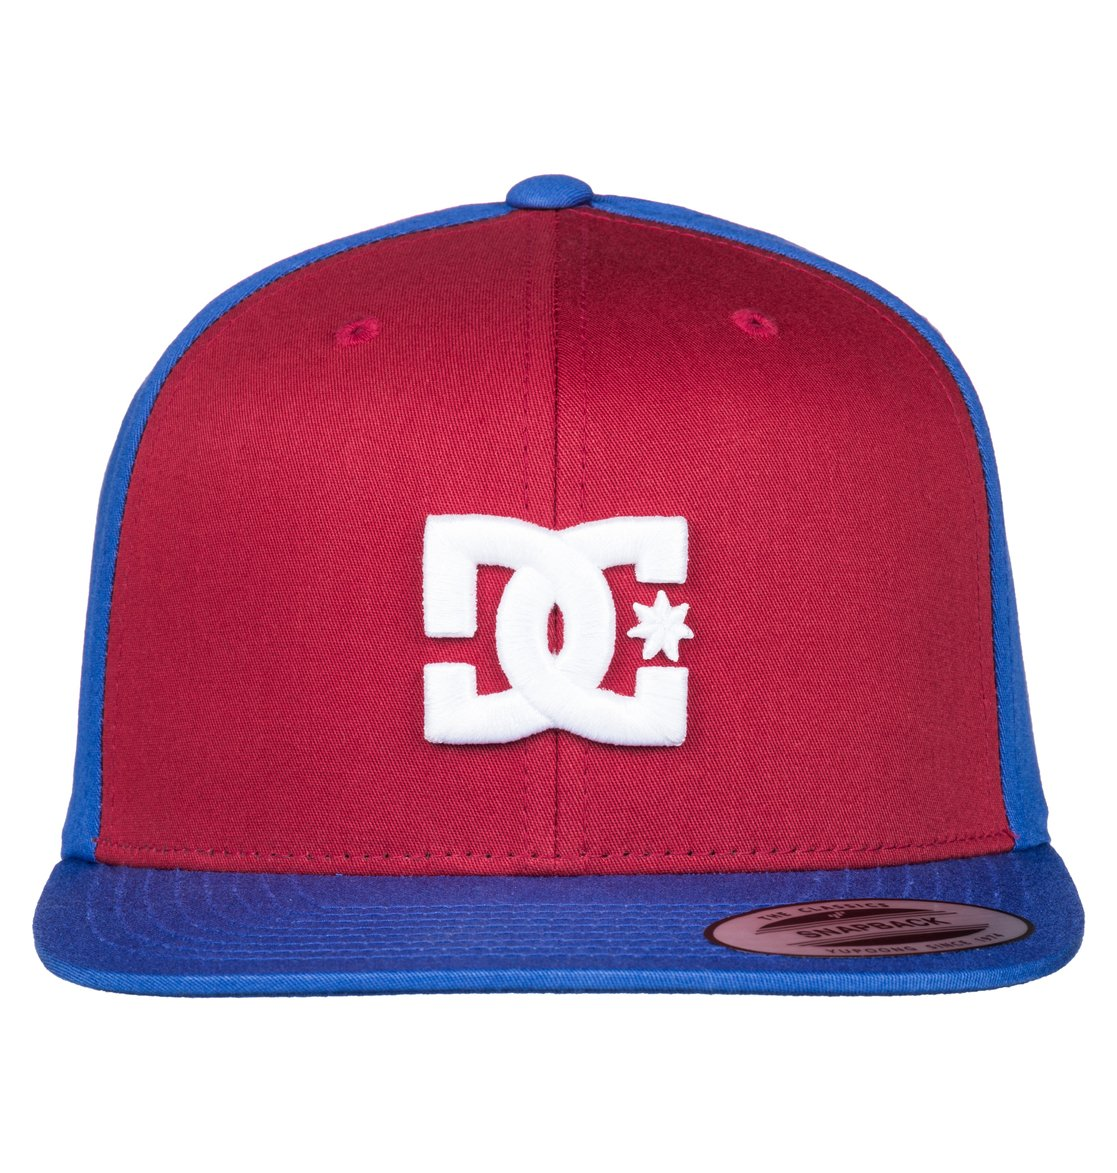 snappy casquette snapback 3613371858988 dc shoes. Black Bedroom Furniture Sets. Home Design Ideas